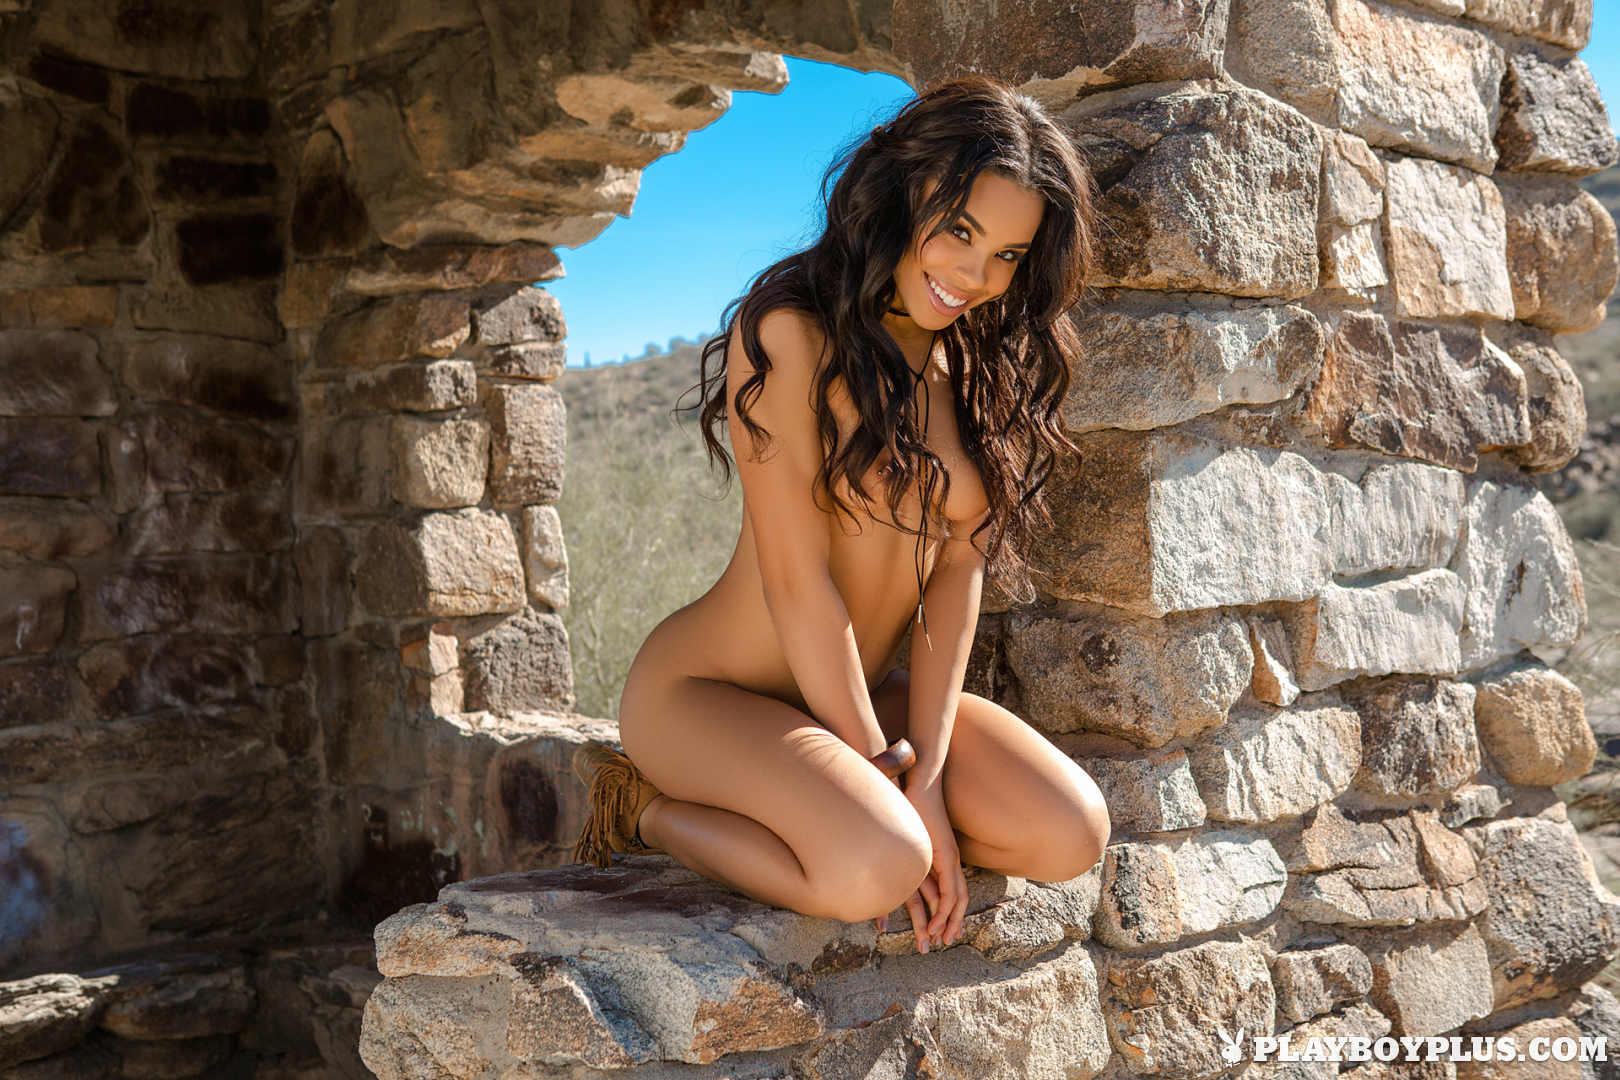 Playboy Cybergirl Briana Ashley Nude Photos & Videos at Playboy Plus!